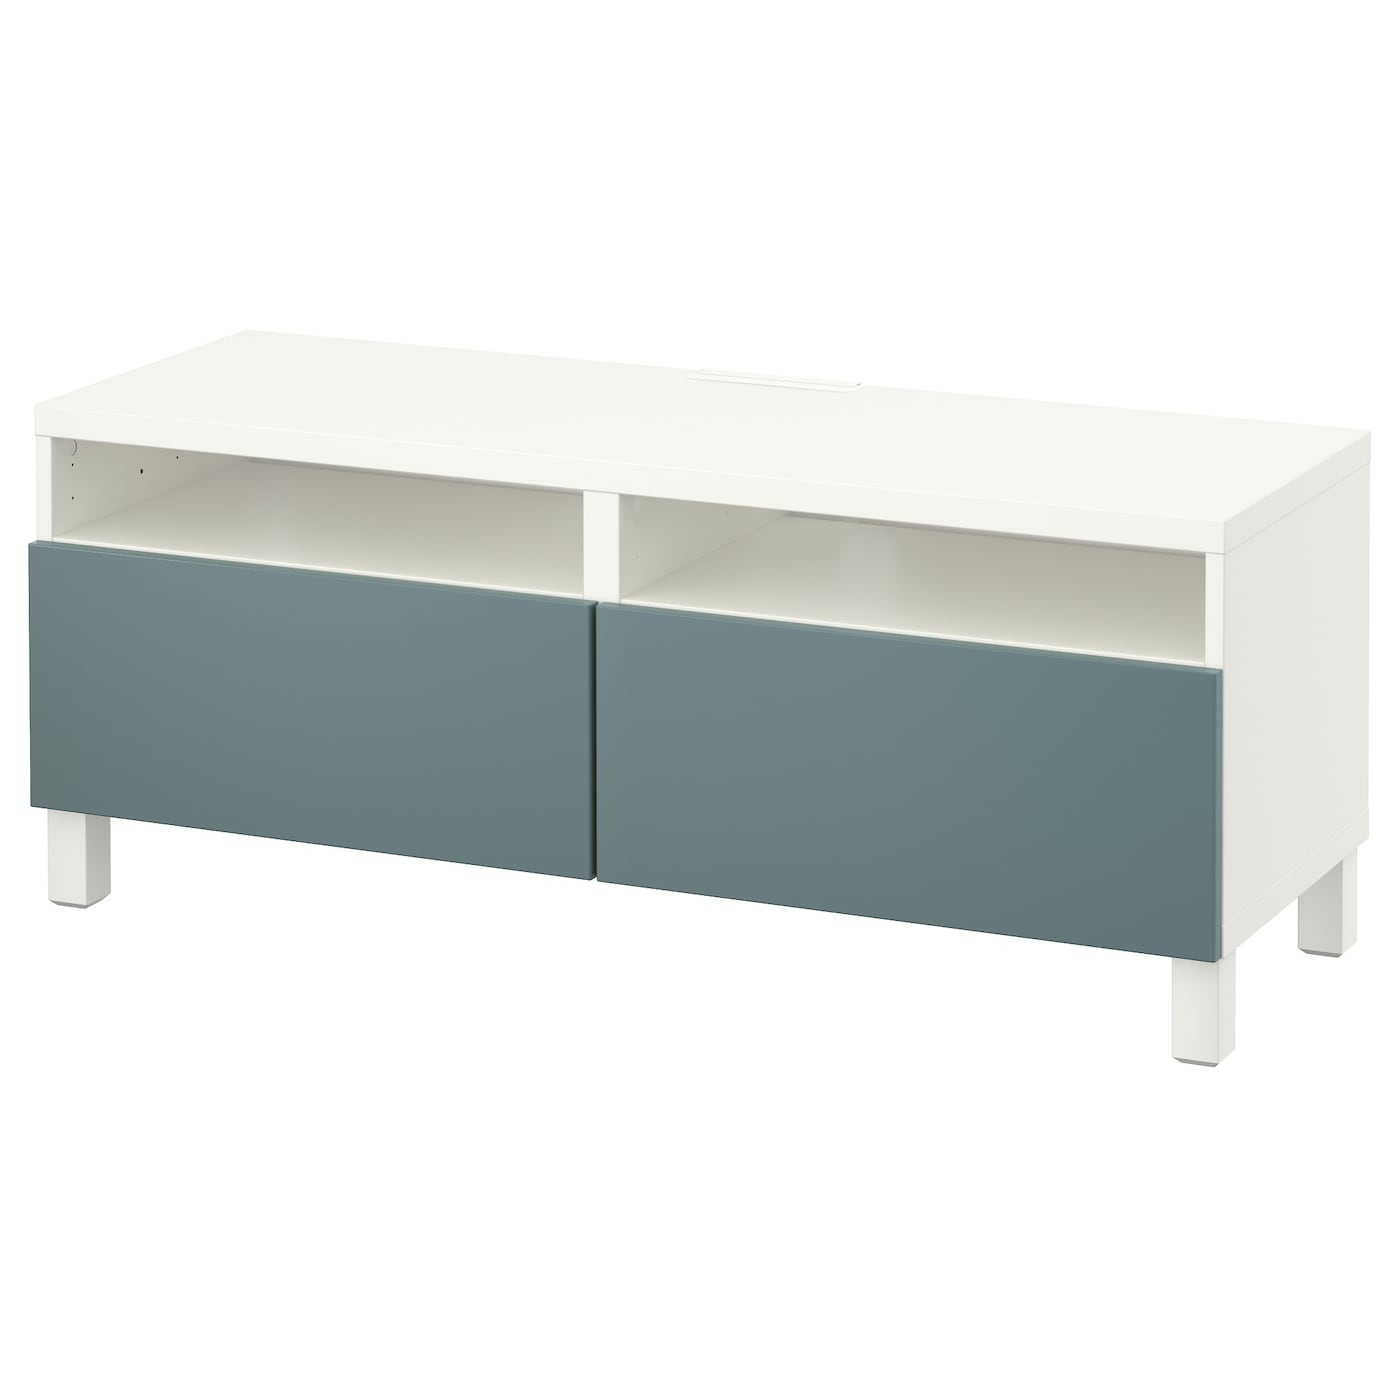 best banc tv avec tiroirs blanc valviken gris turquoise. Black Bedroom Furniture Sets. Home Design Ideas